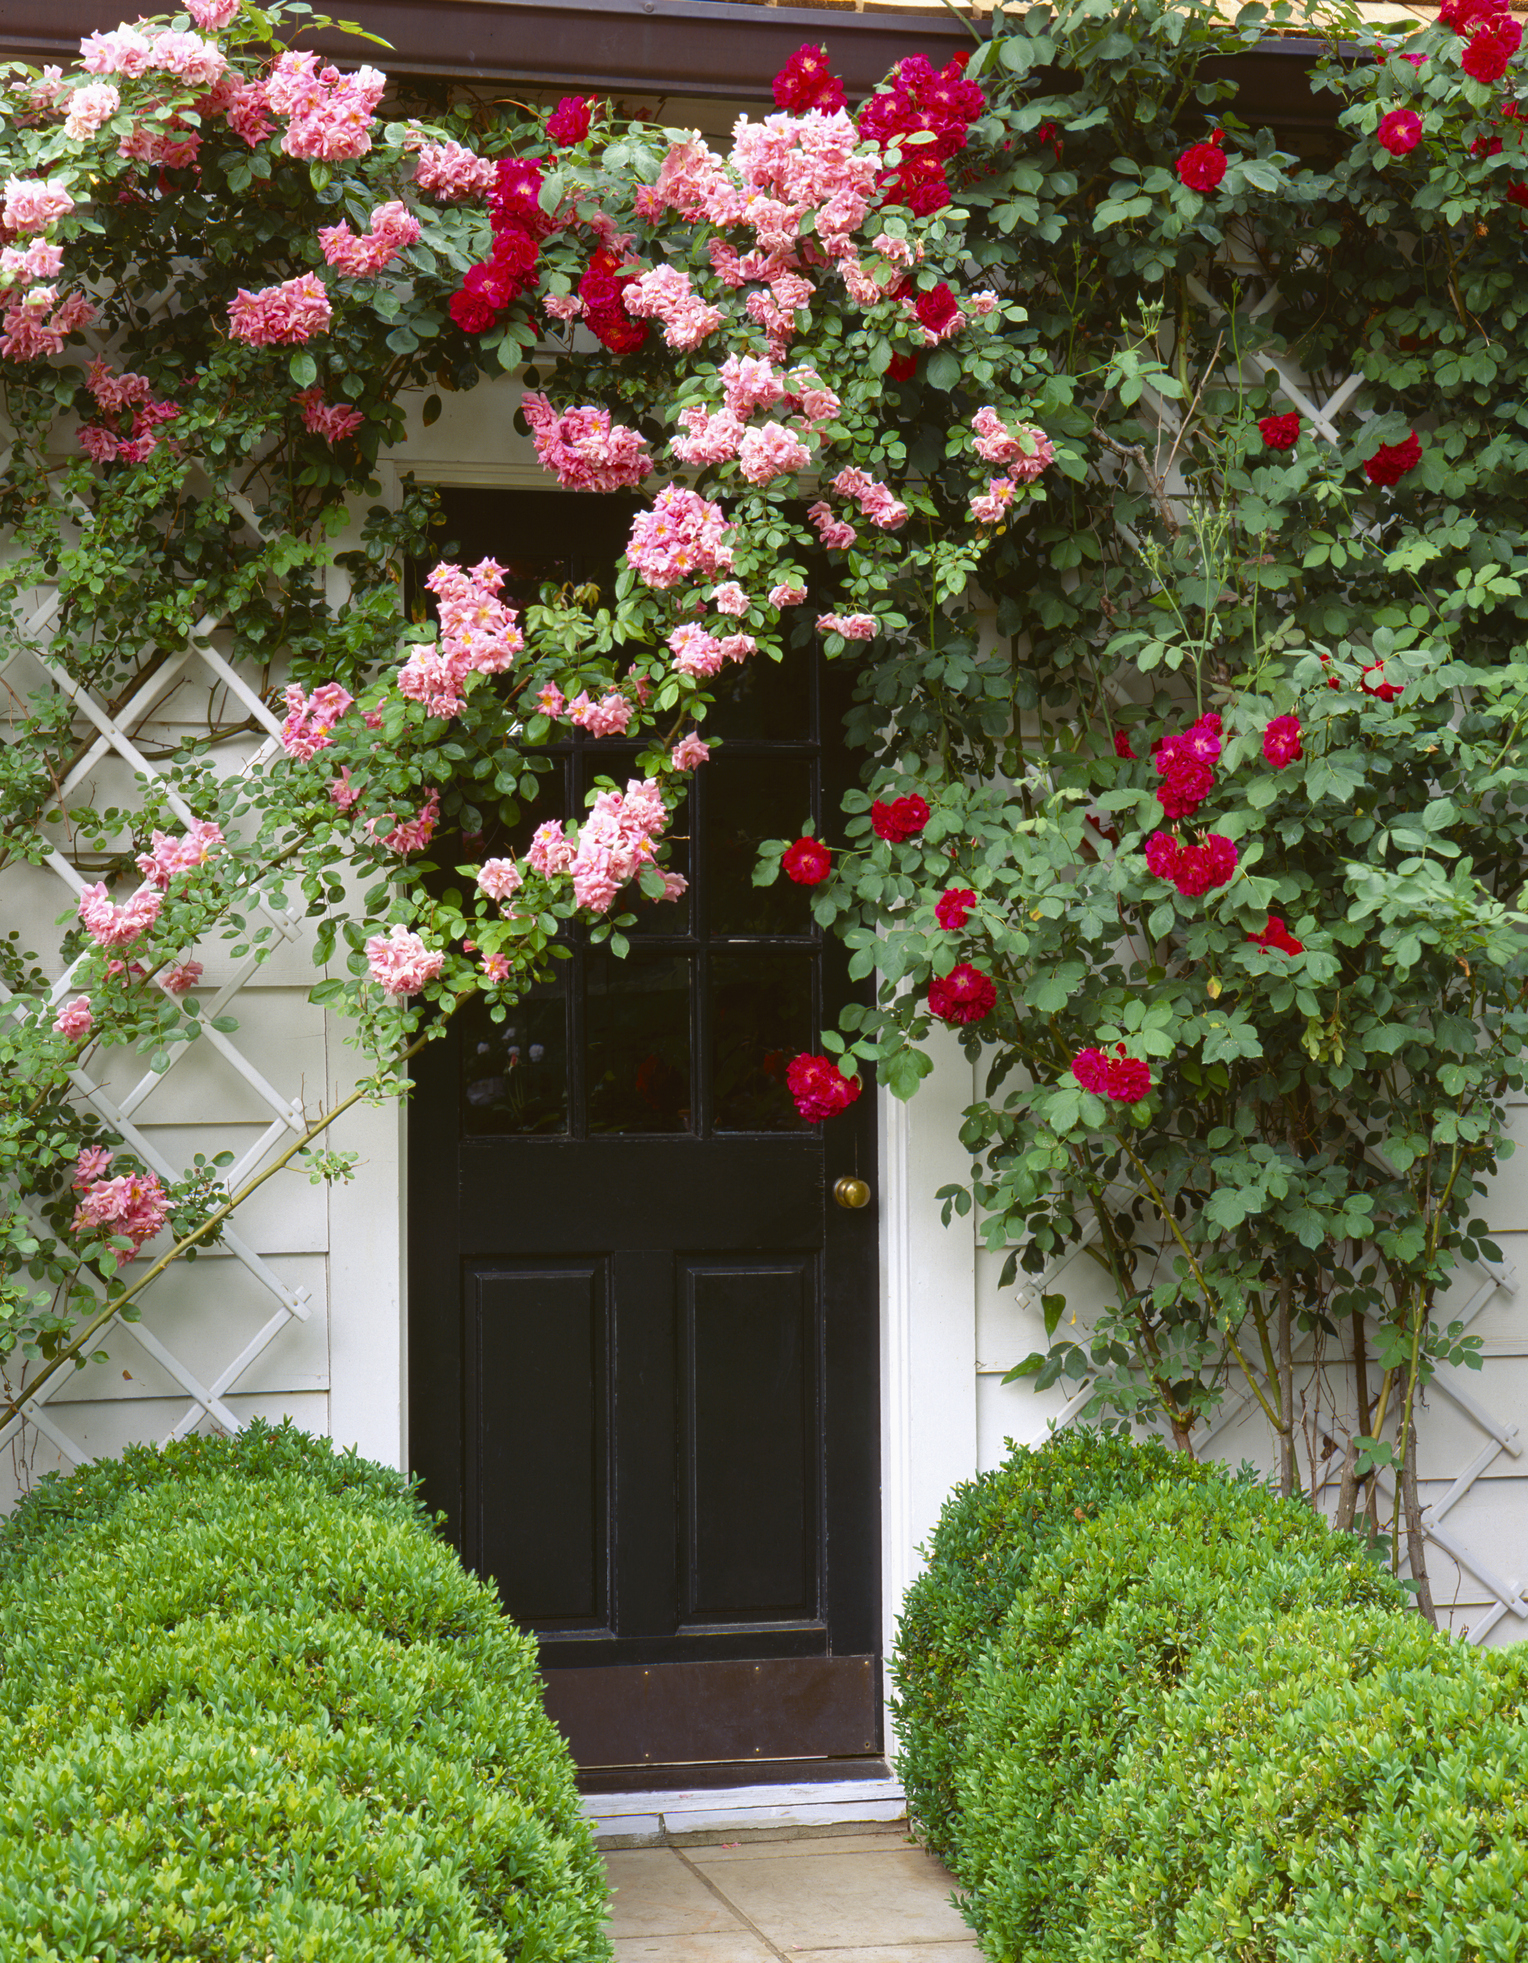 How To Make Your Front Garden Look Presentable For Summer